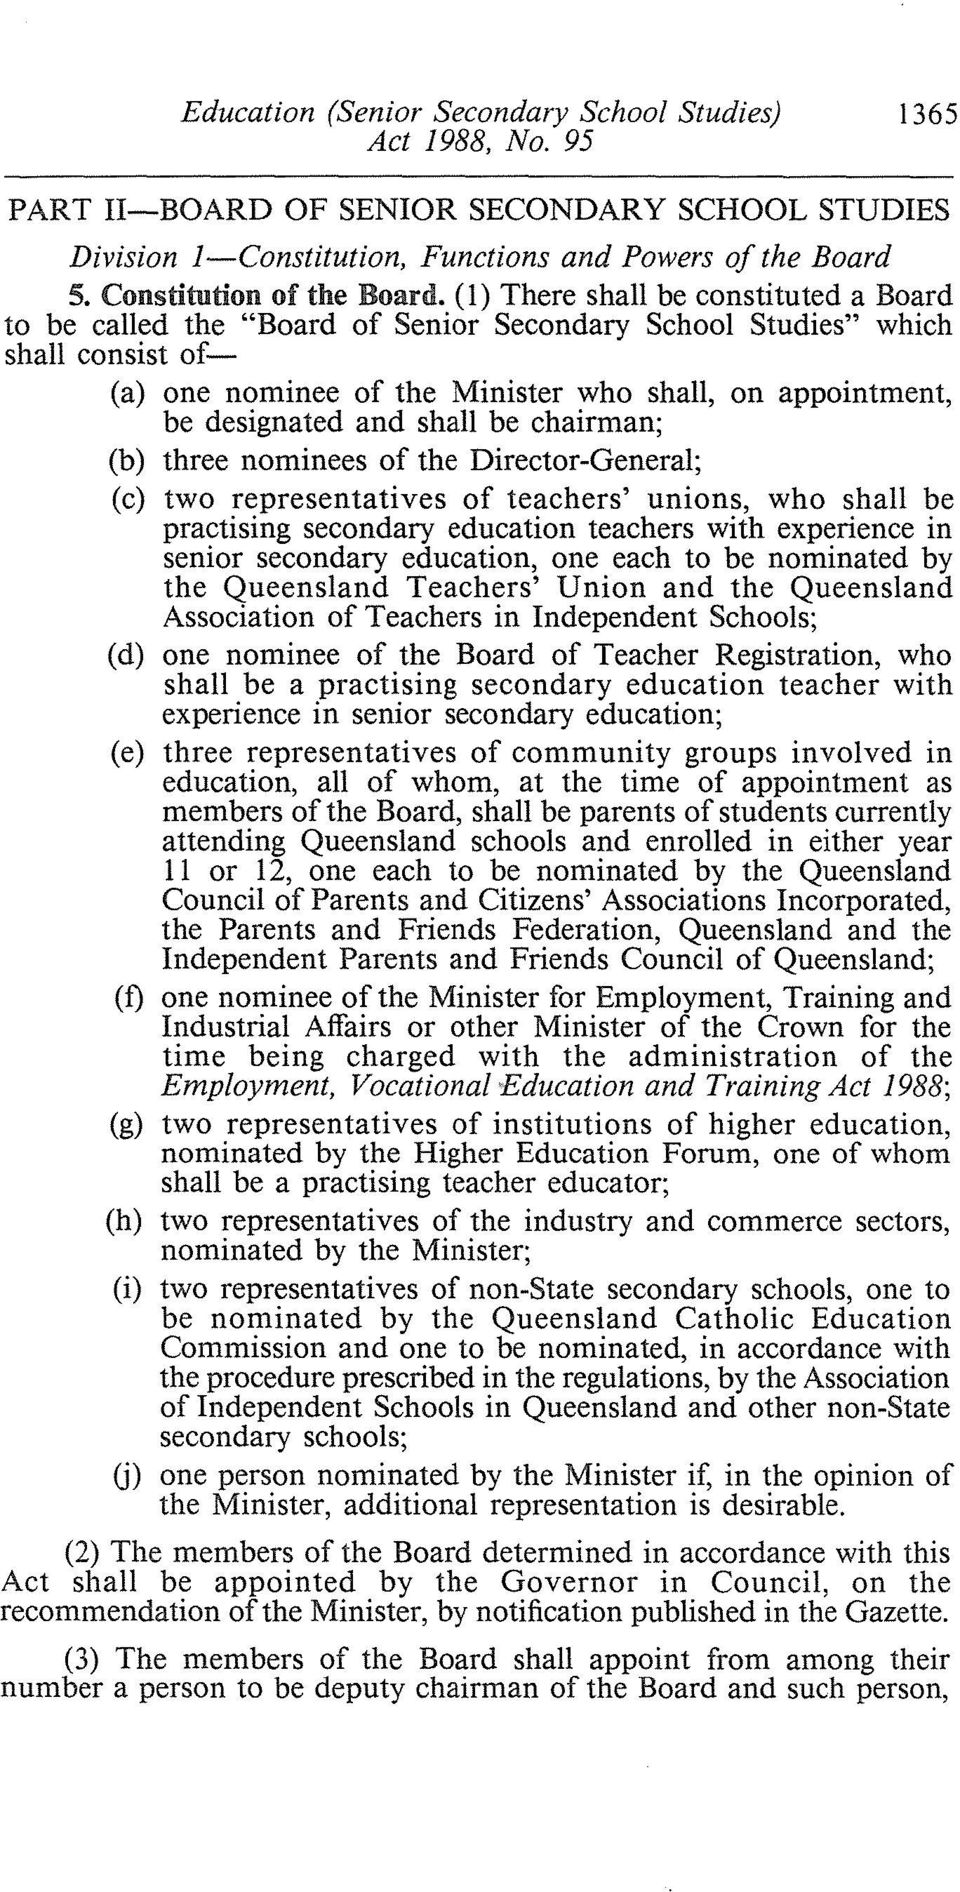 shall be chairman; (b) three nominees of the Director-General; (c) two representatives of teachers' unions, who shall be practising secondary education teachers with experience in senior secondary